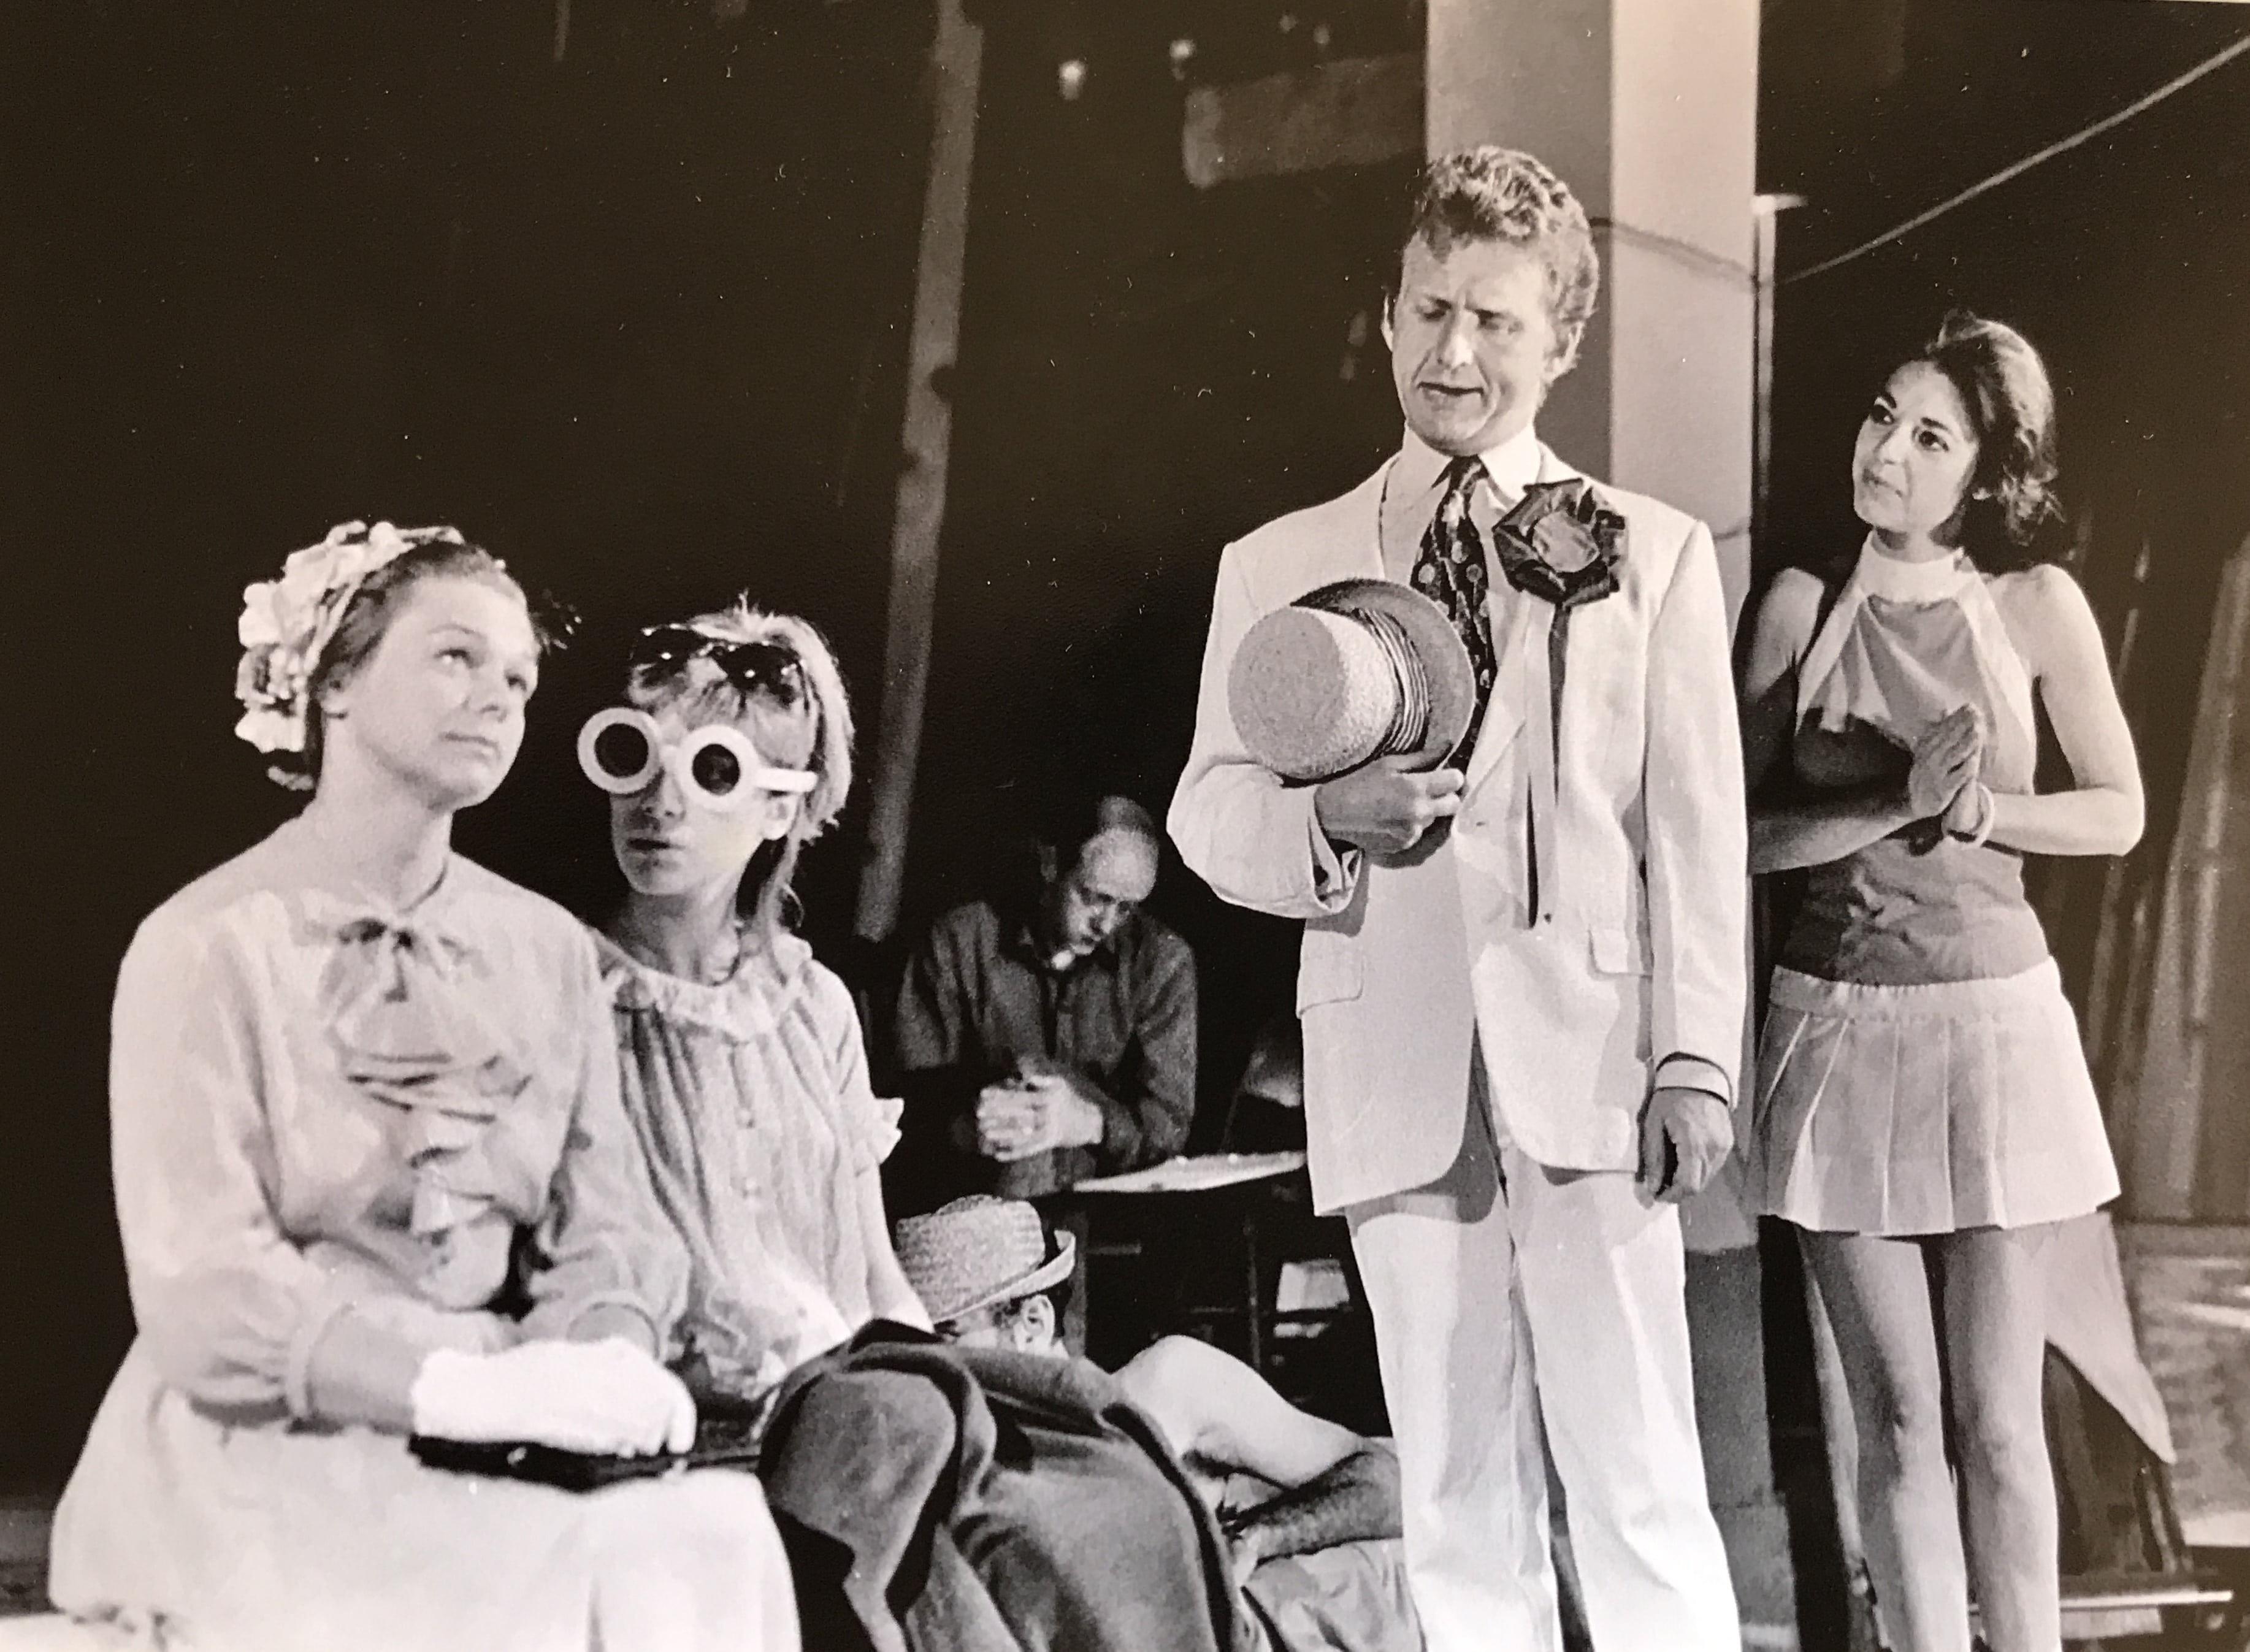 Rehearsal for The Skin of Our Teeth at BTF, 1966. Photo courtesy of the Penn family.